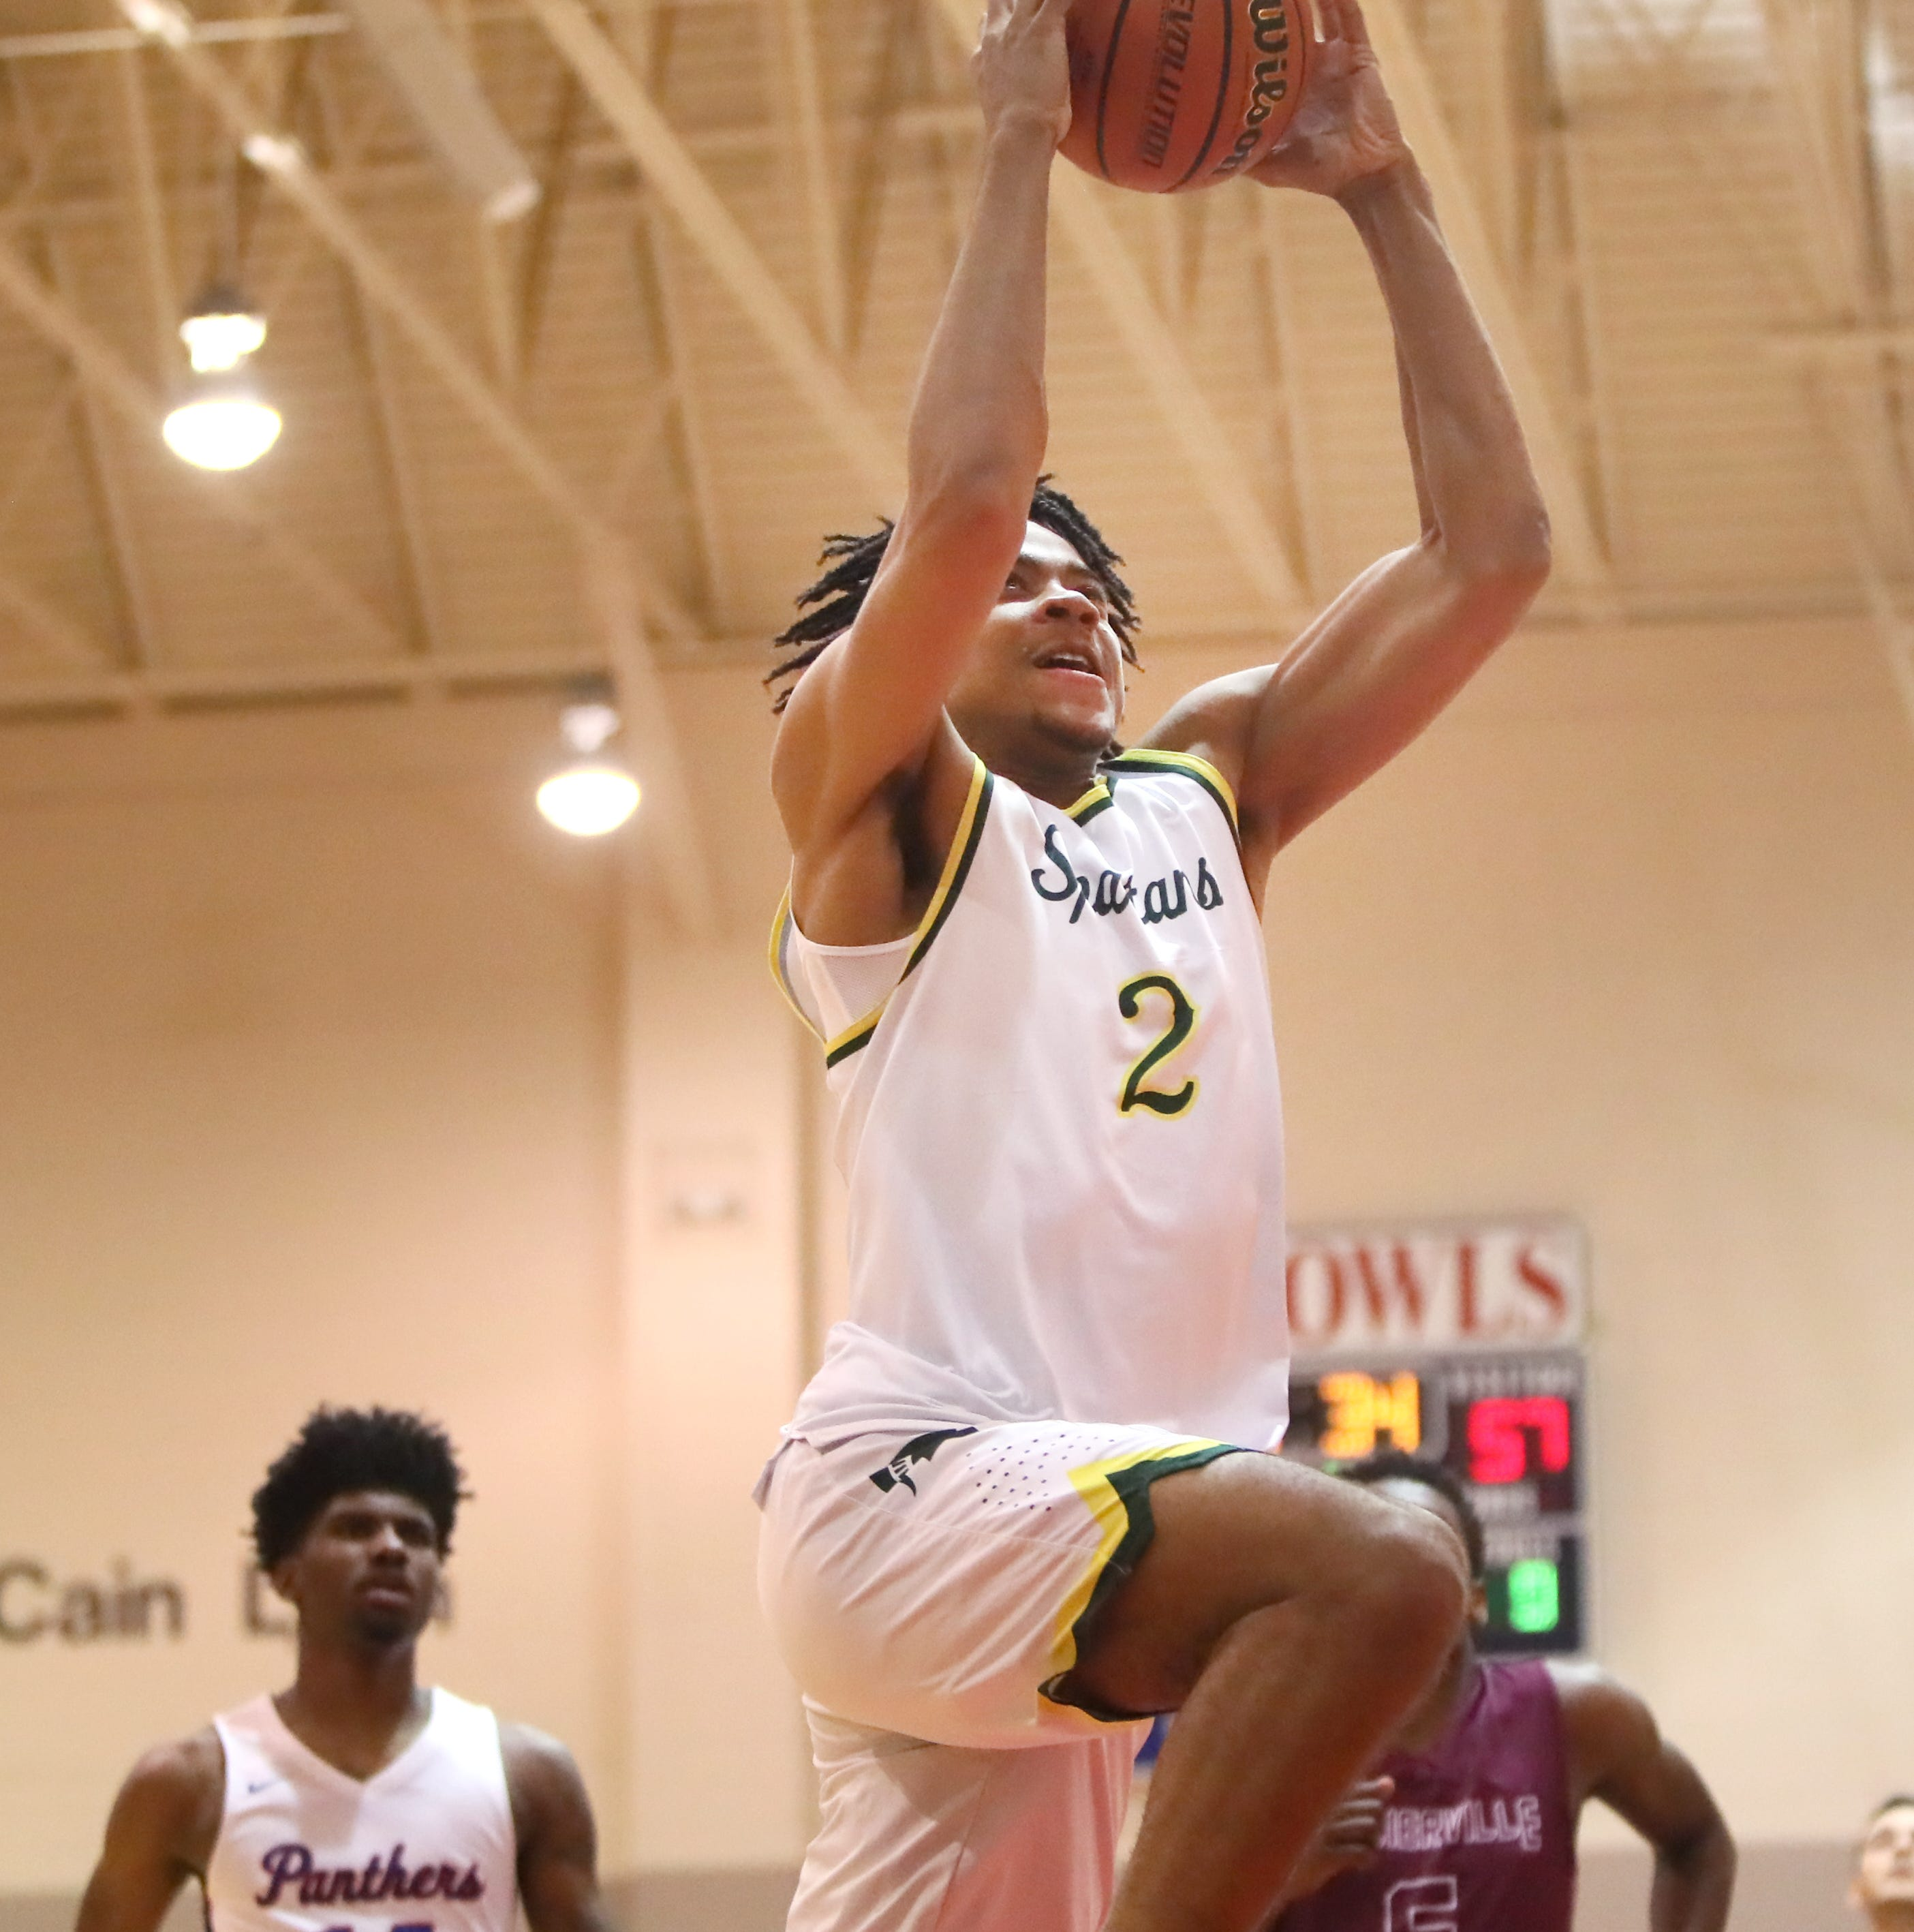 Memphis basketball recruit Trendon Watford delays decision date